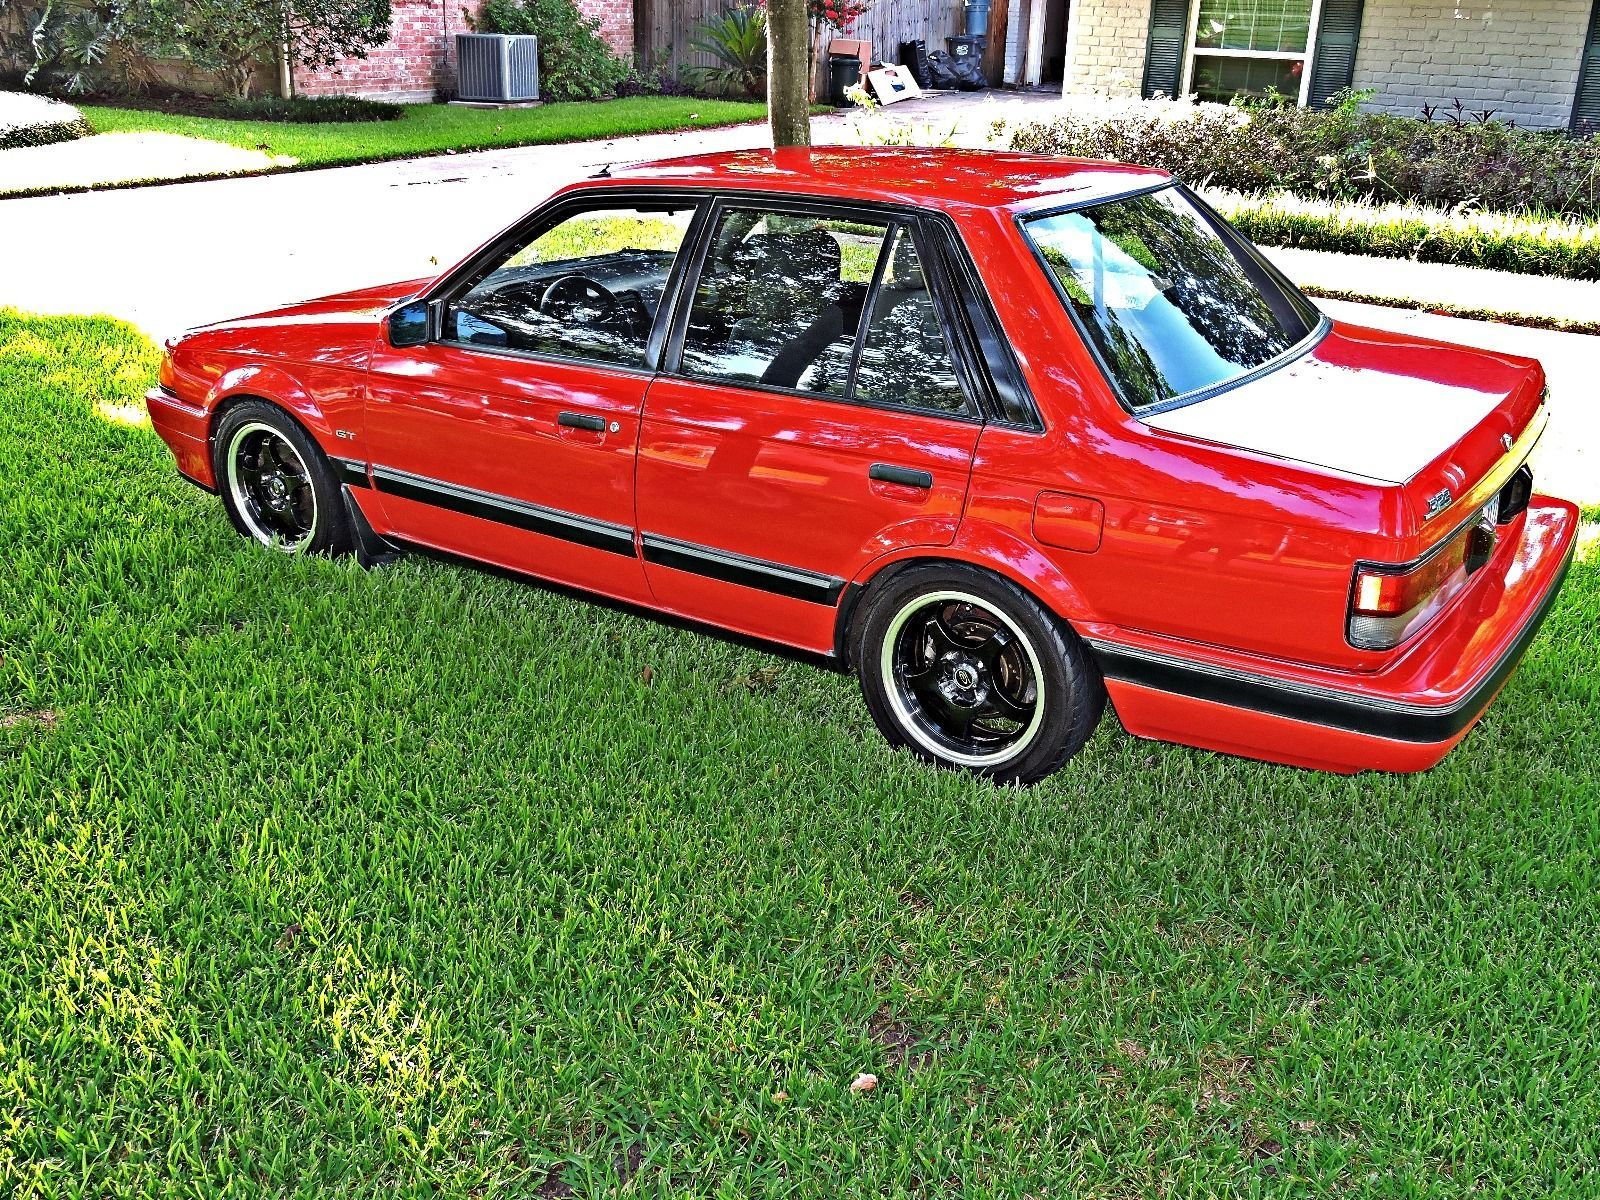 1988 mazda 323 gt turbo sedan gtx b6t love to own. Black Bedroom Furniture Sets. Home Design Ideas